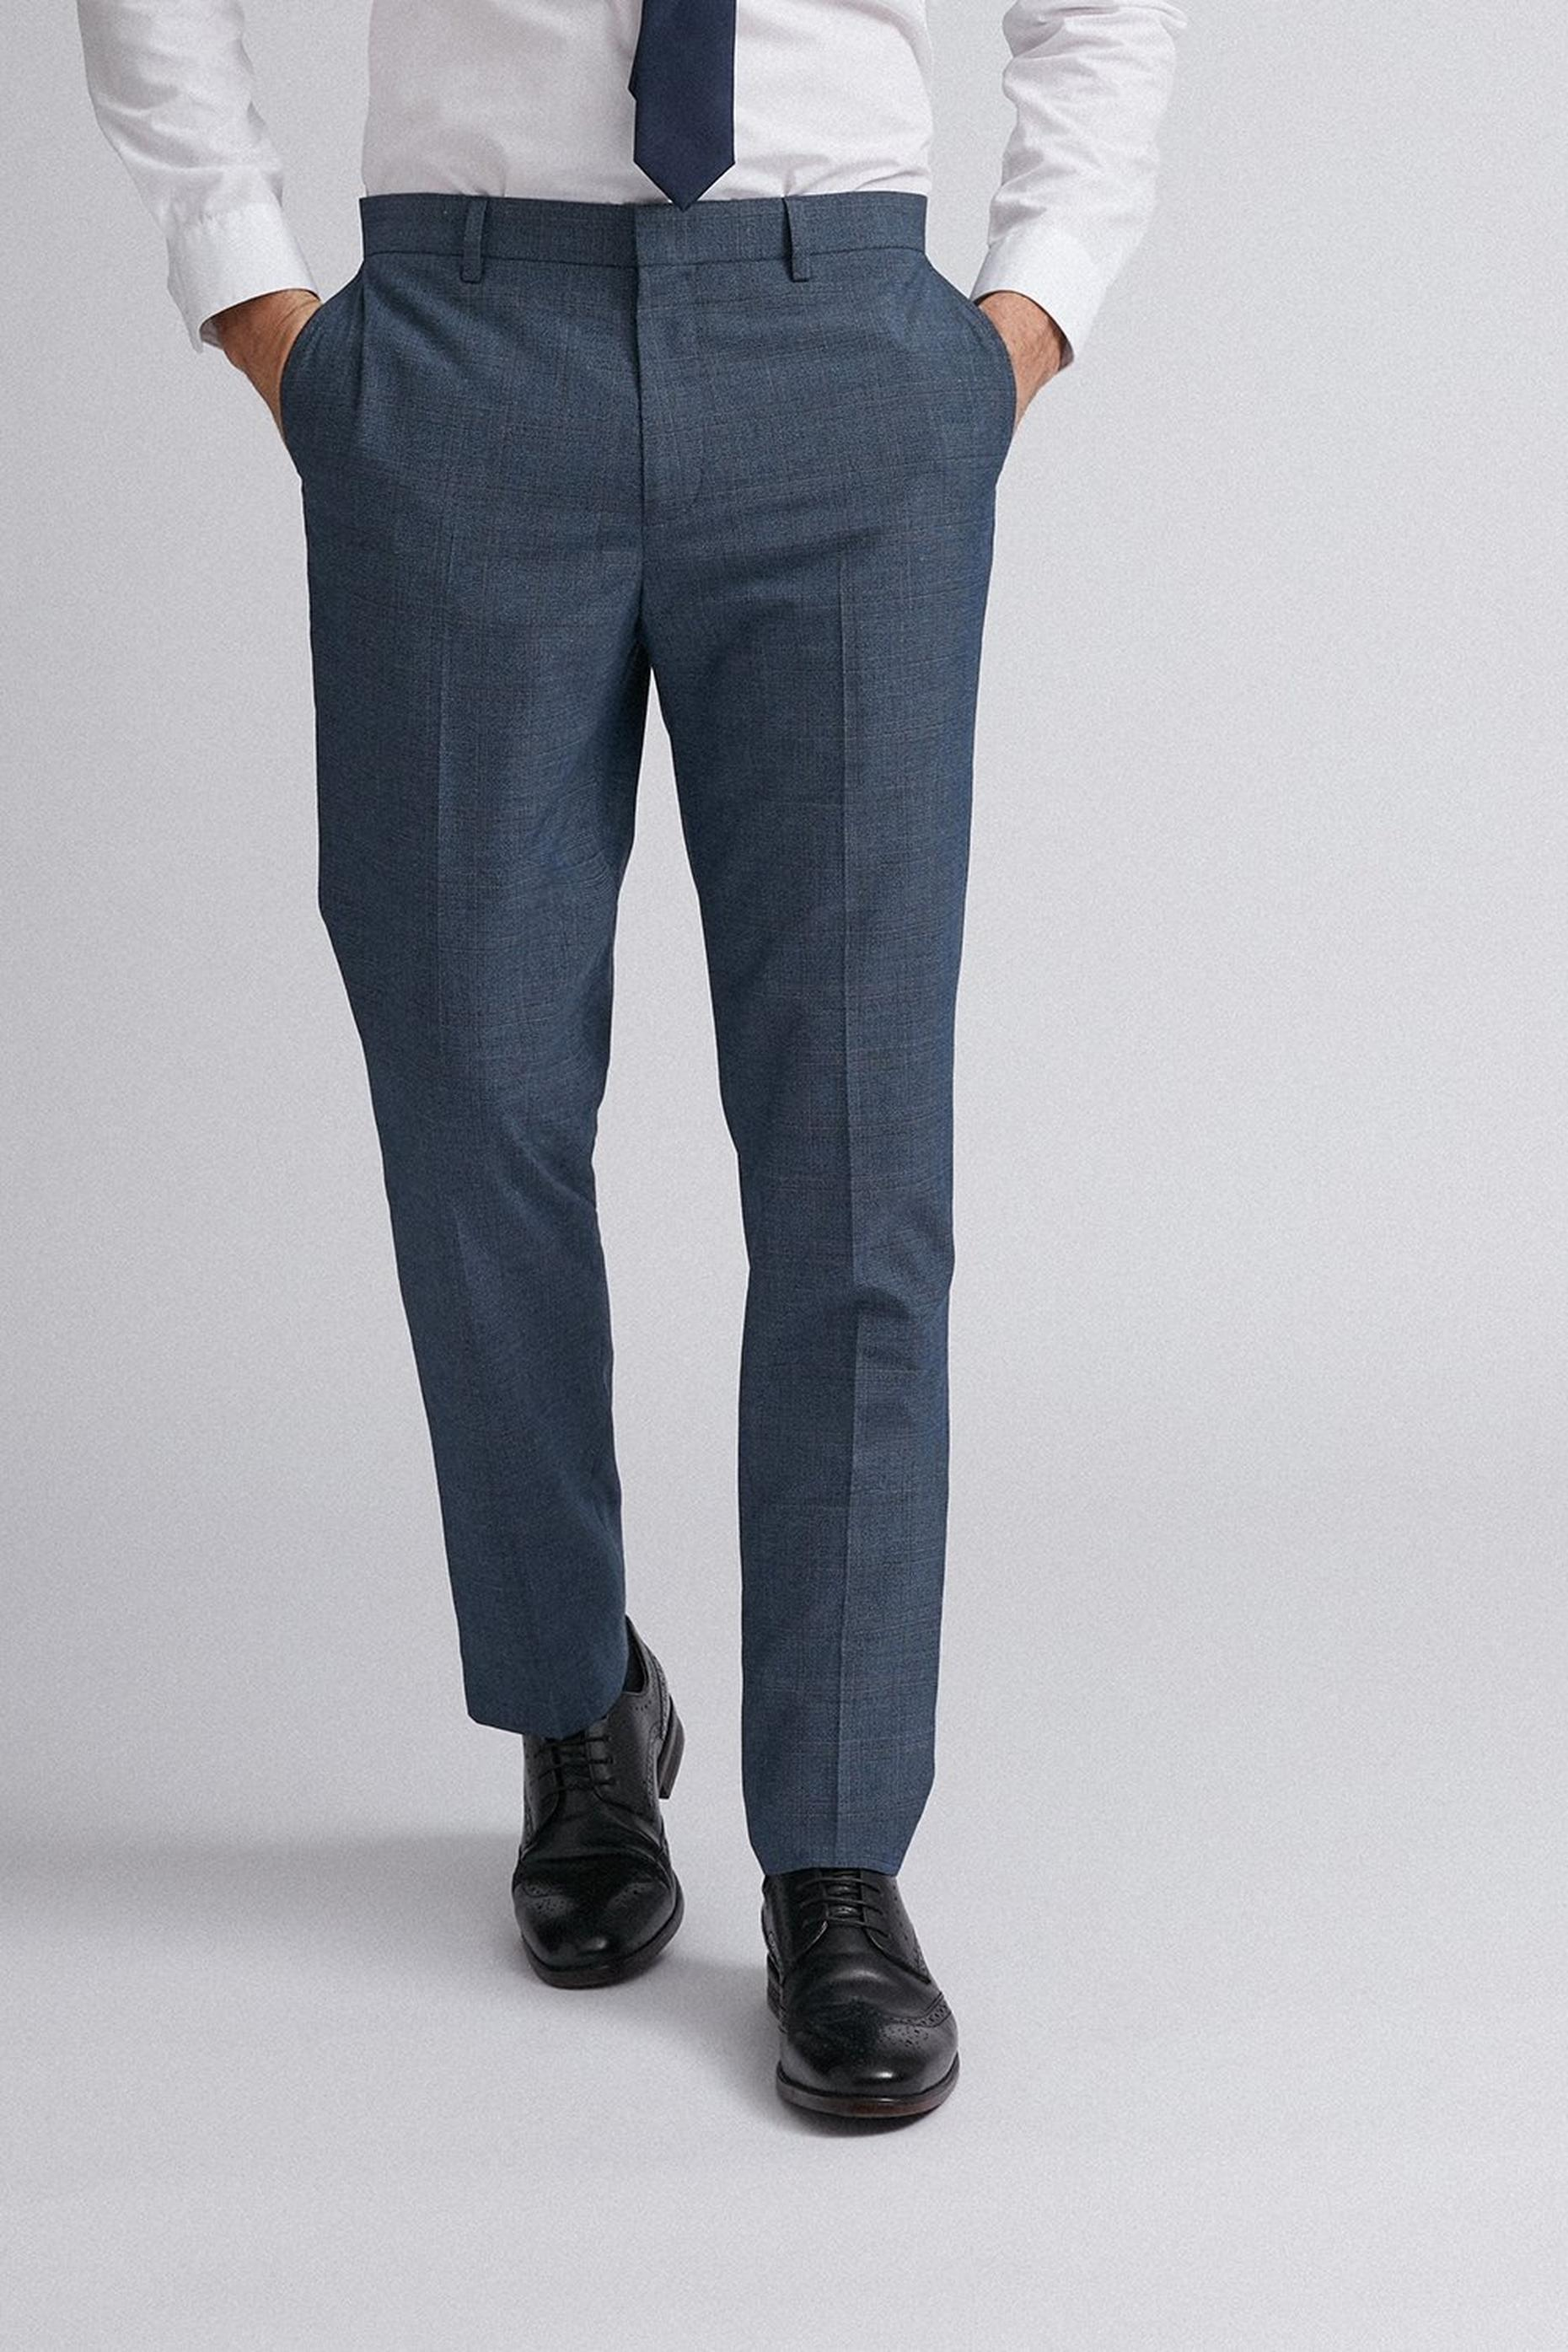 Blue Jaspe Check Slim Fit Suit Trousers